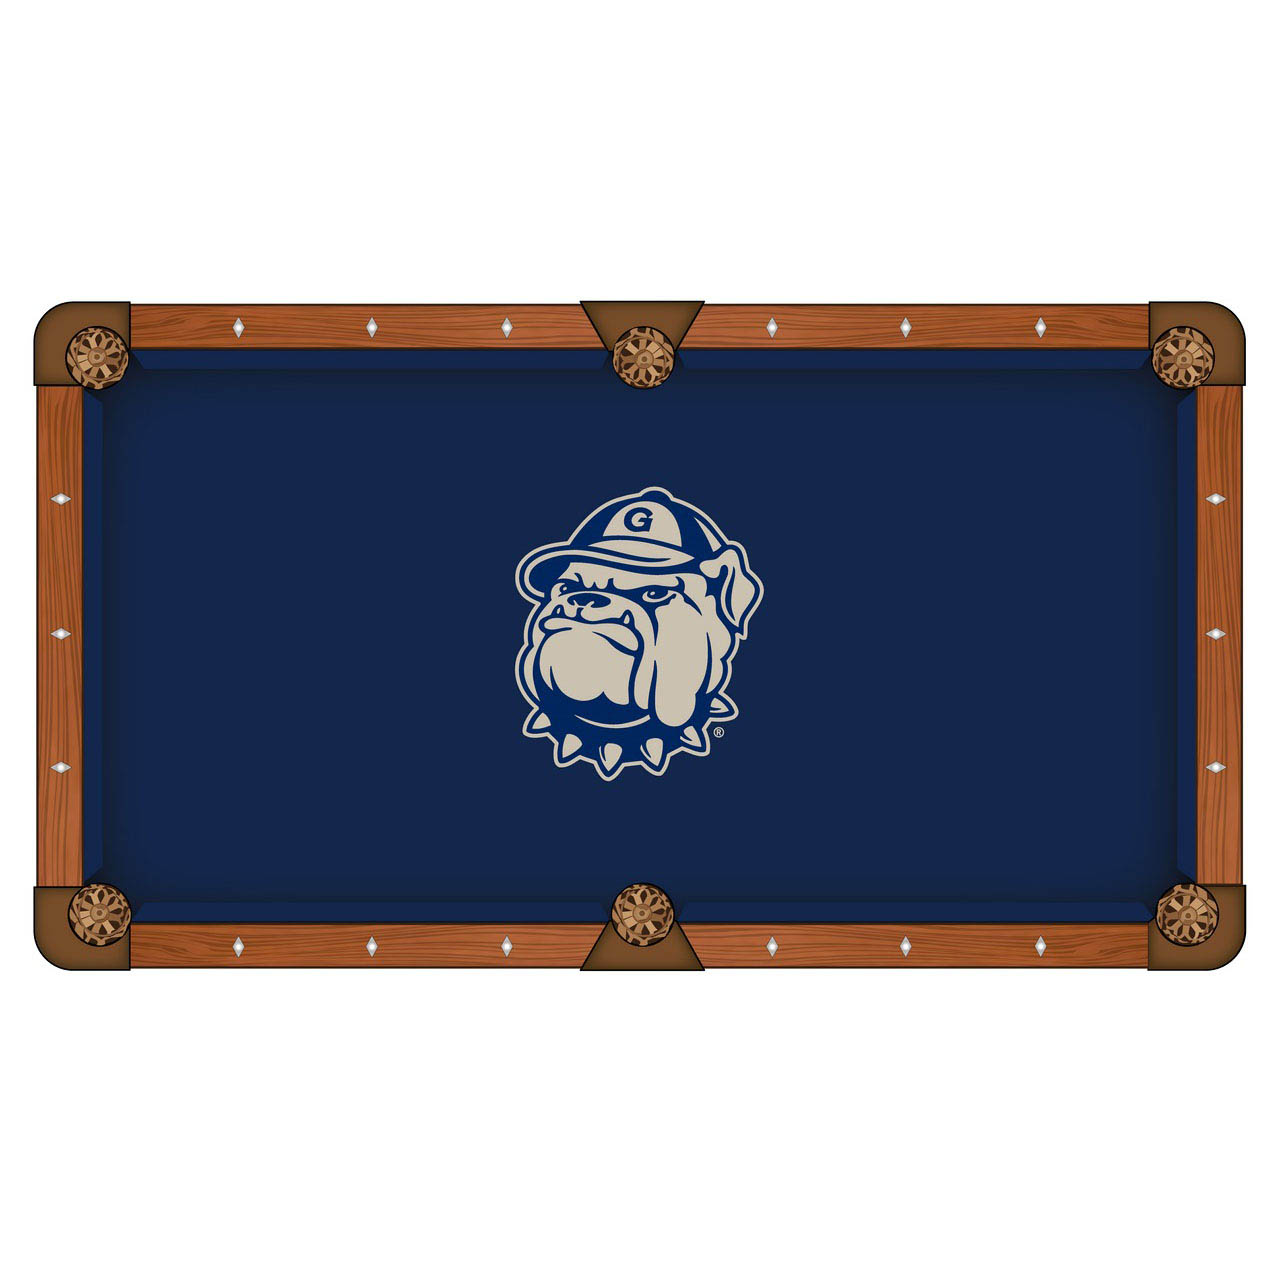 High-class Georgetown University Pool Table Cloth Product Photo